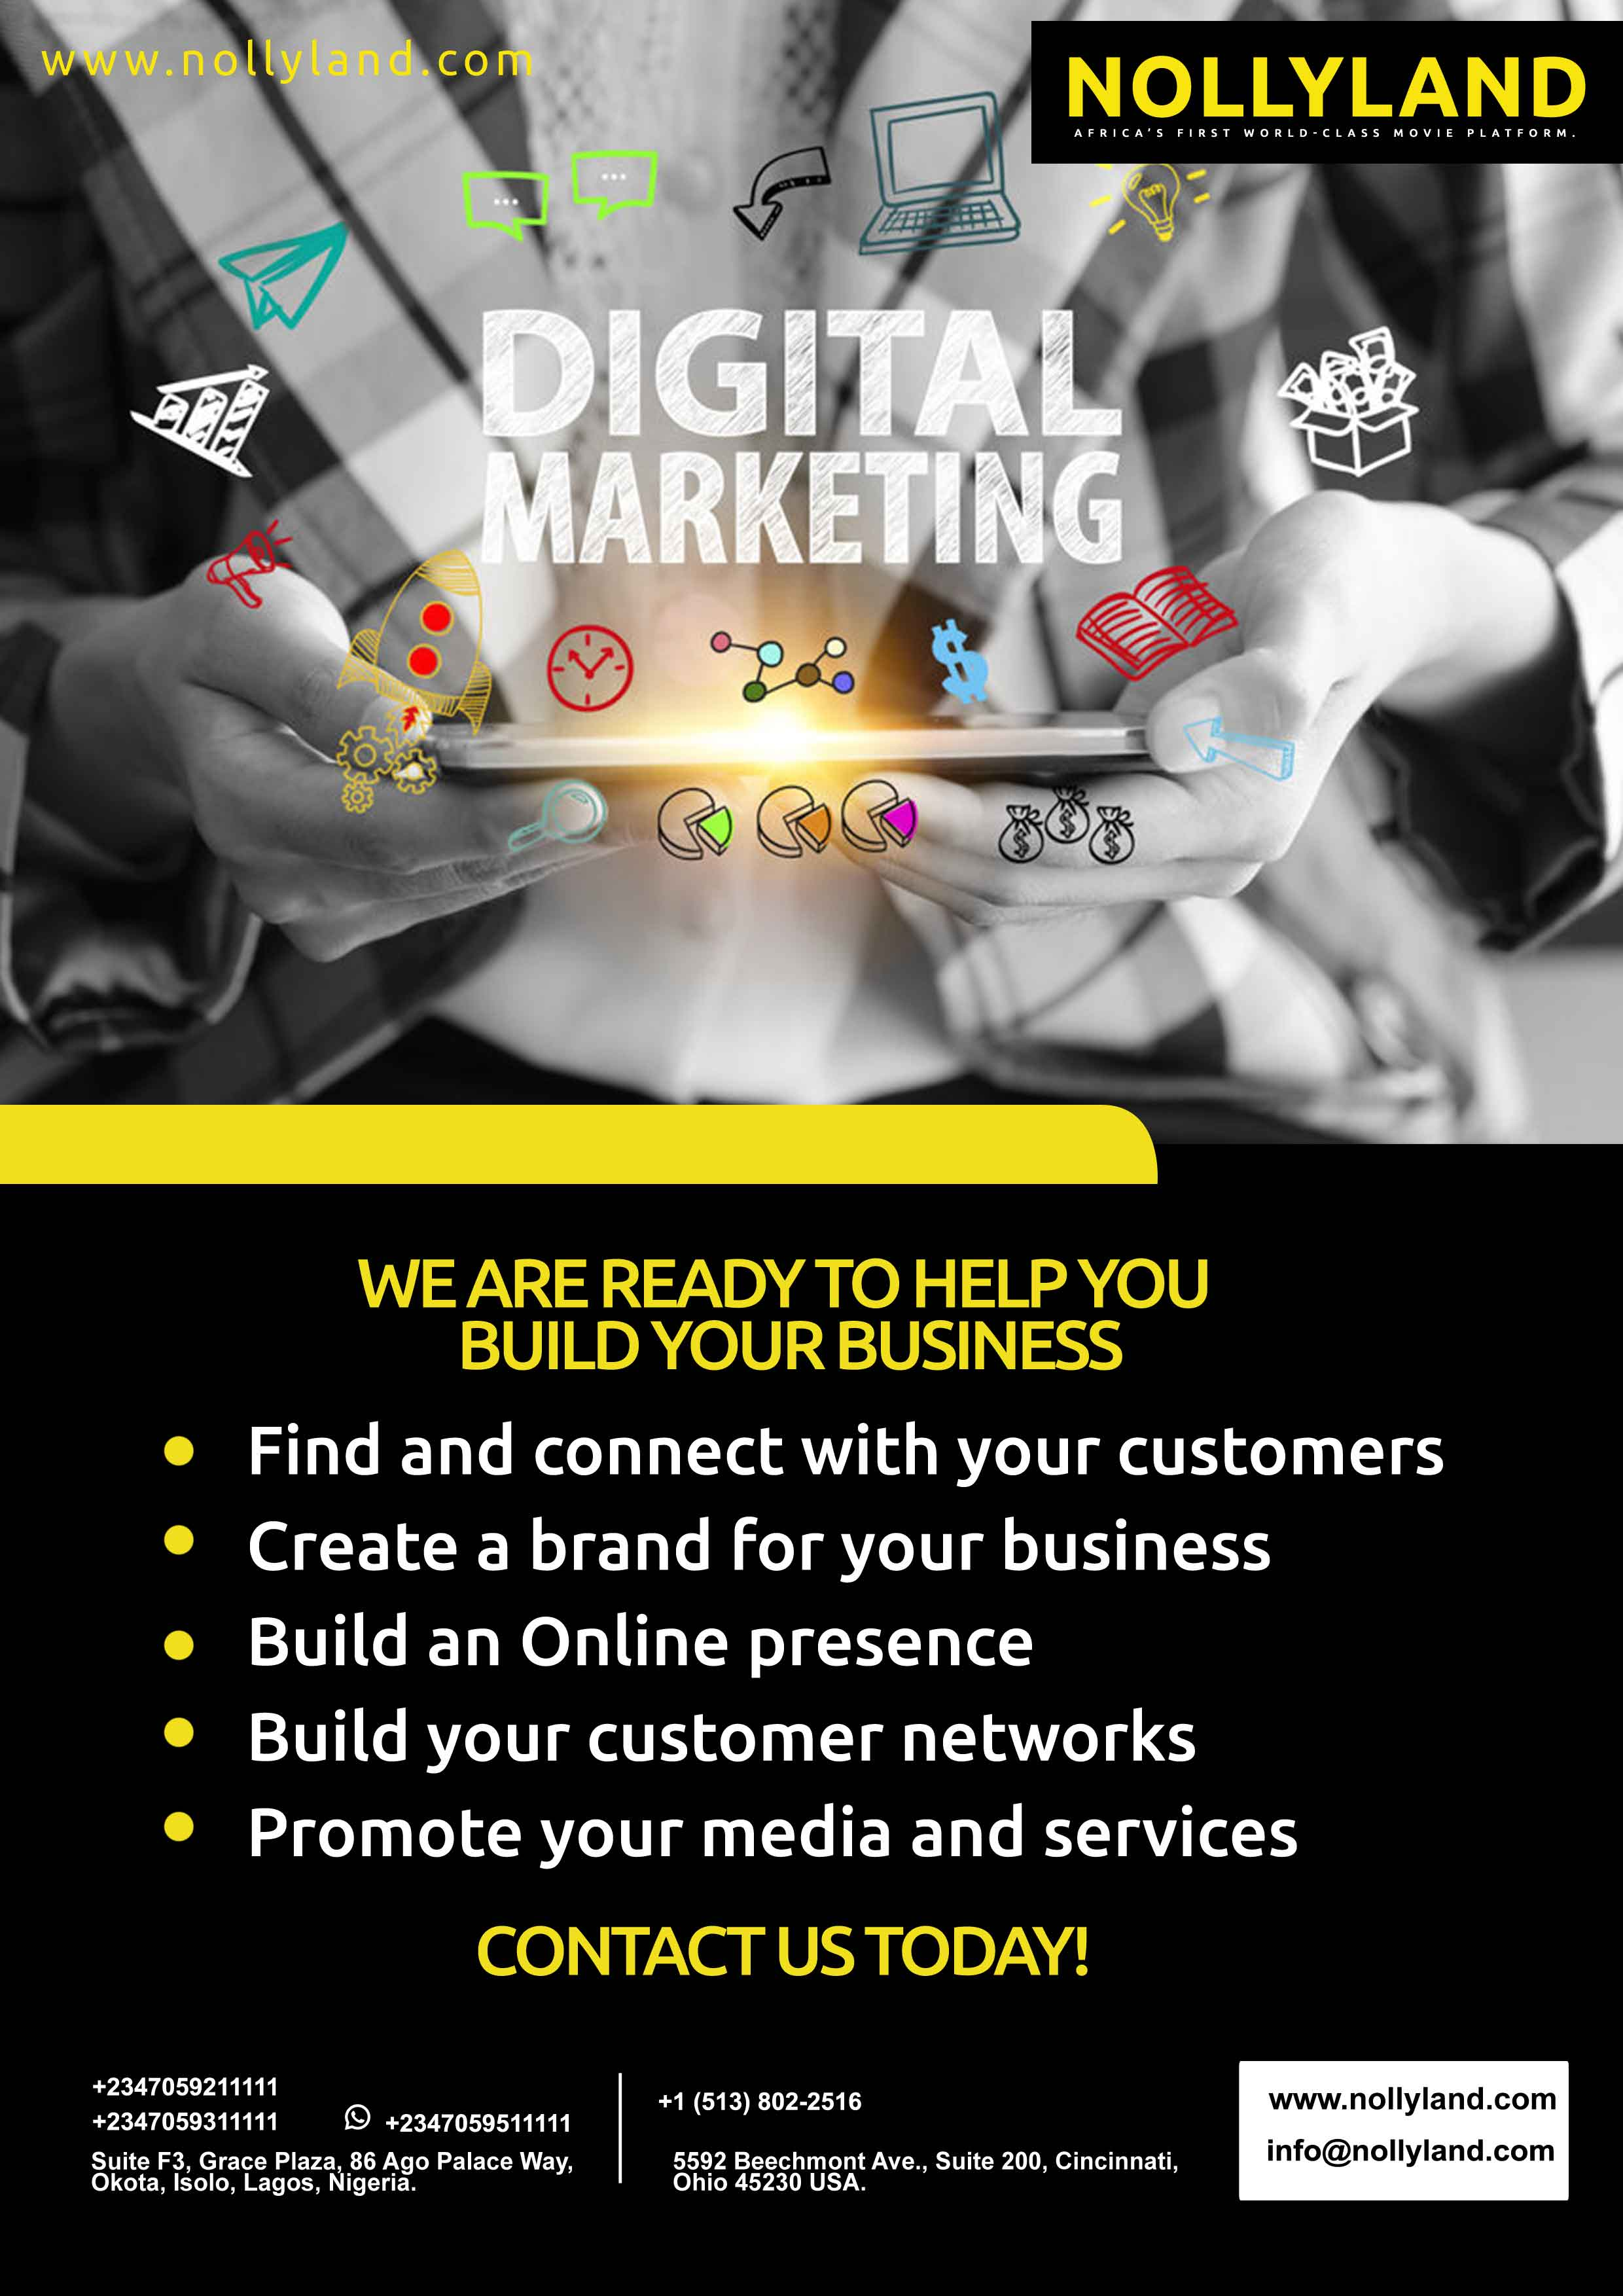 NollyLand Digital Marketing